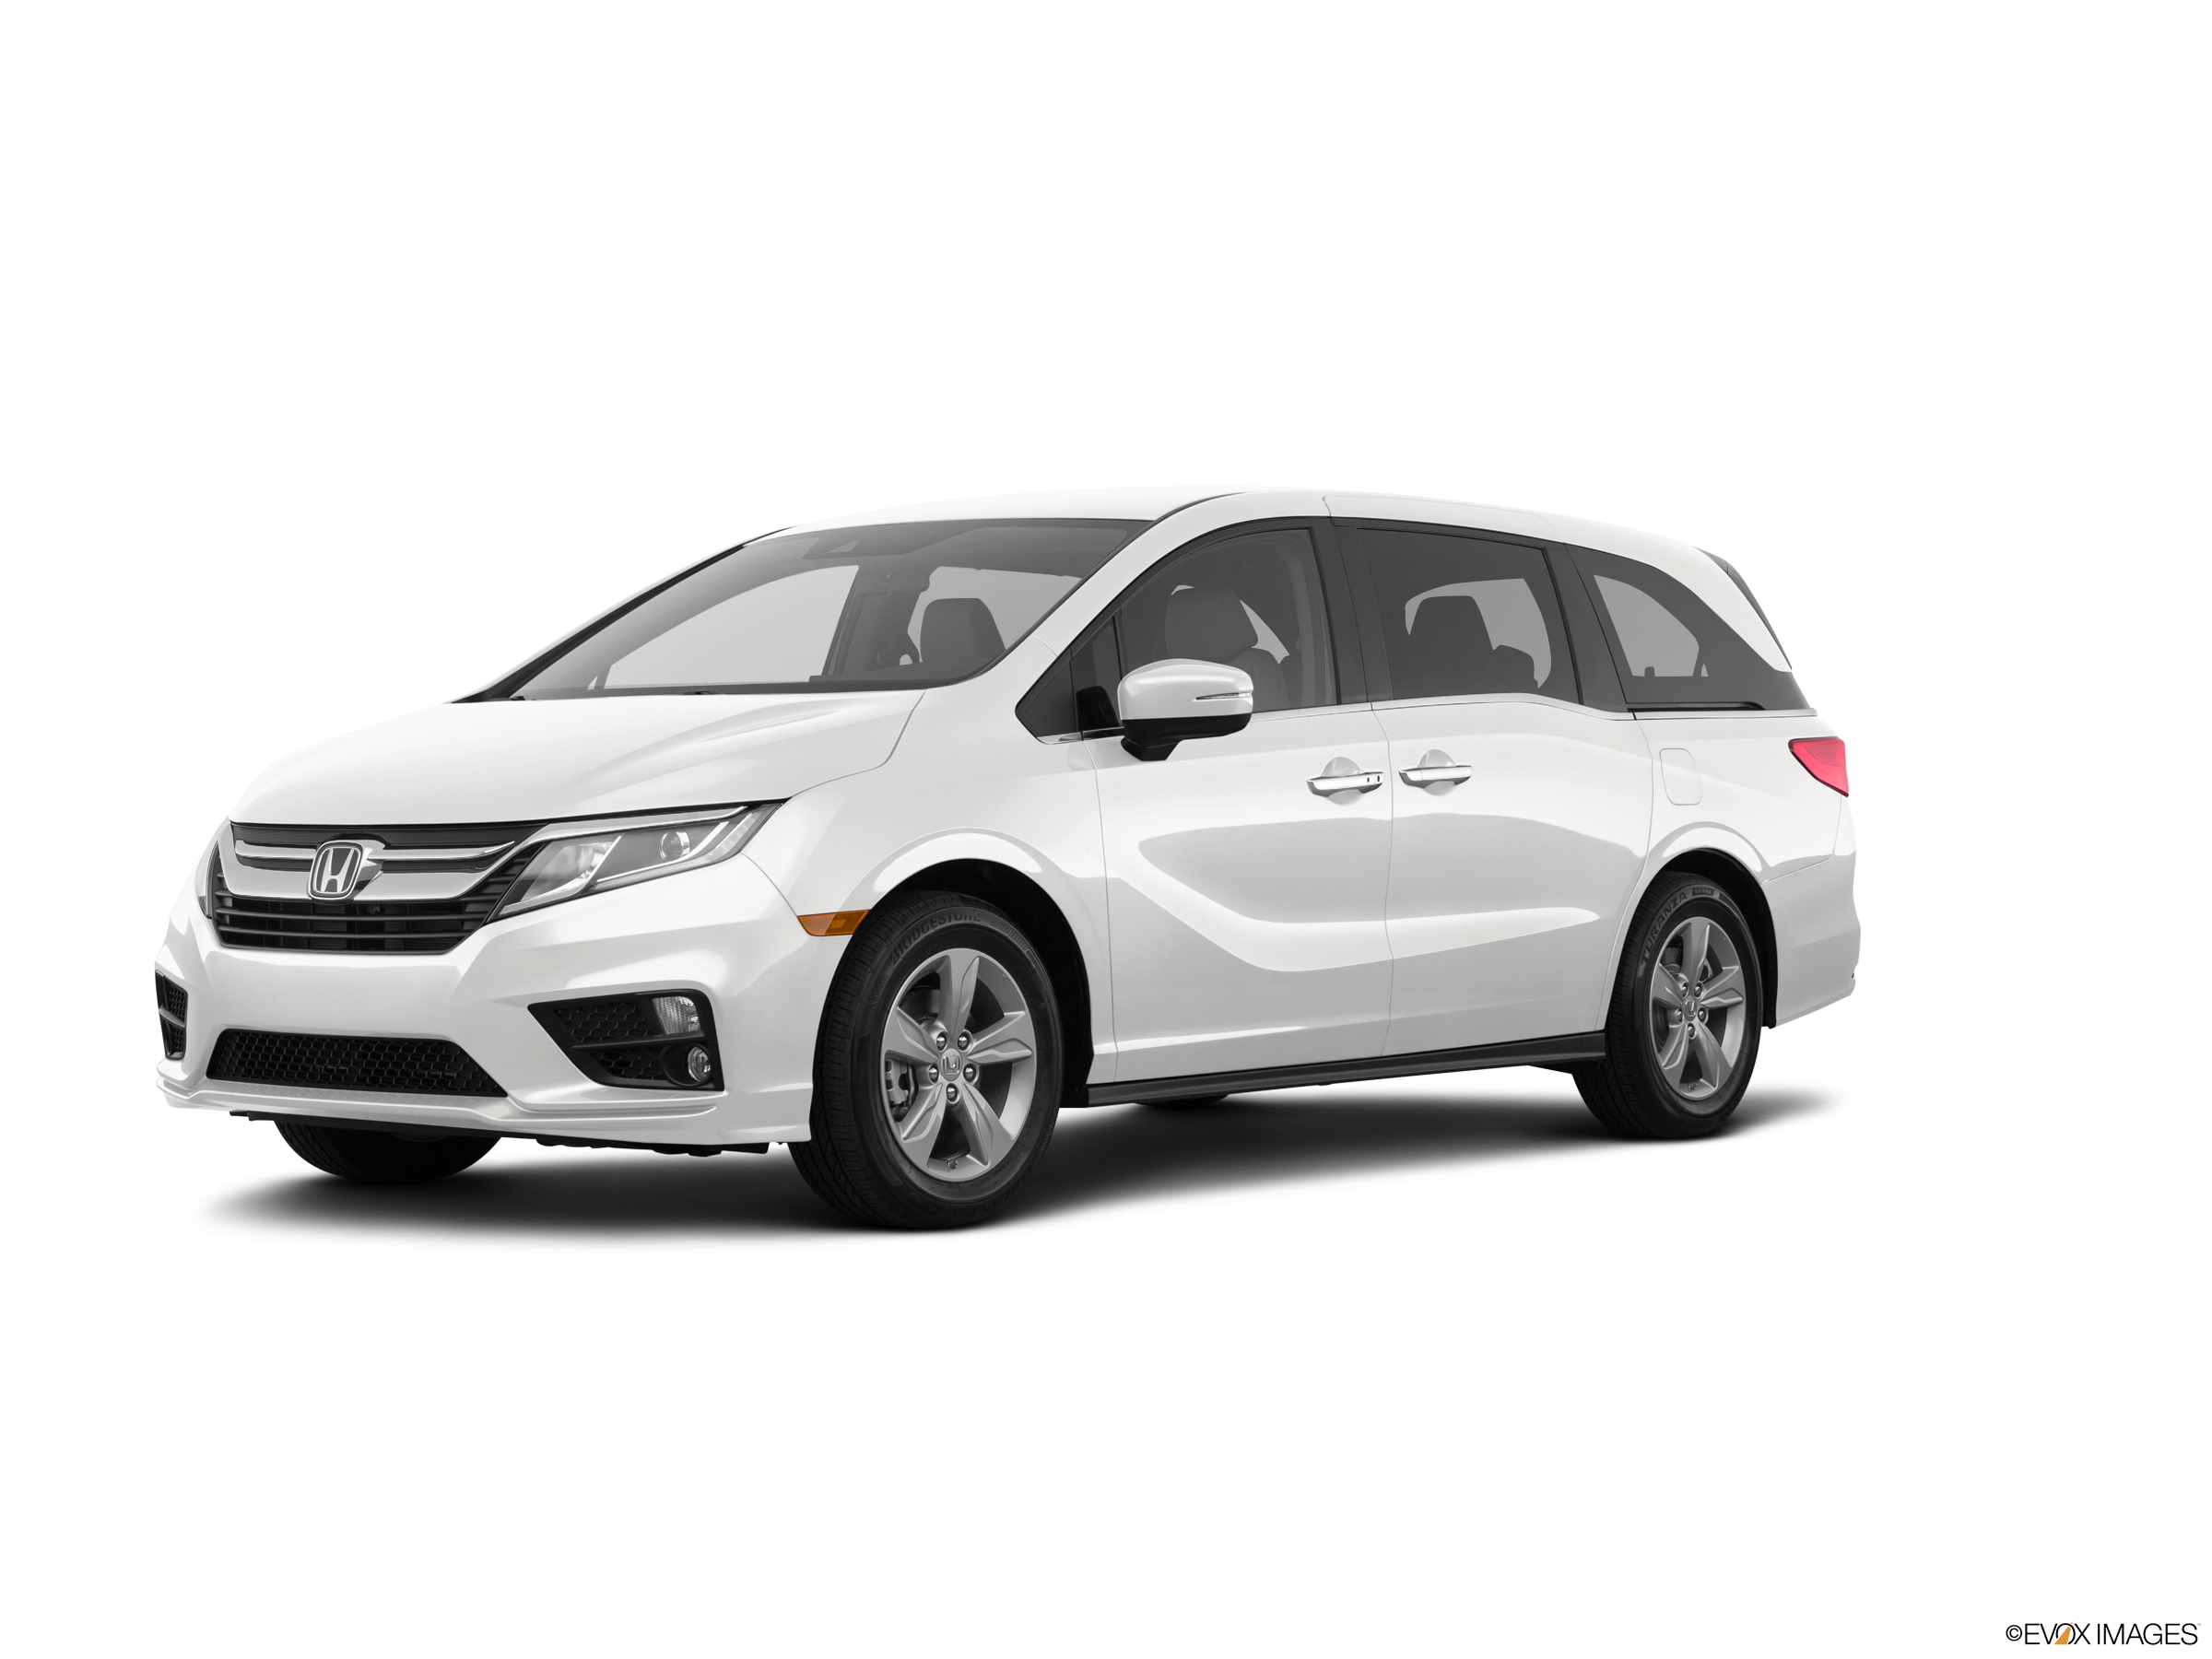 Best Safety Rated Van/Minivans of 2019 - 2019 Honda Odyssey